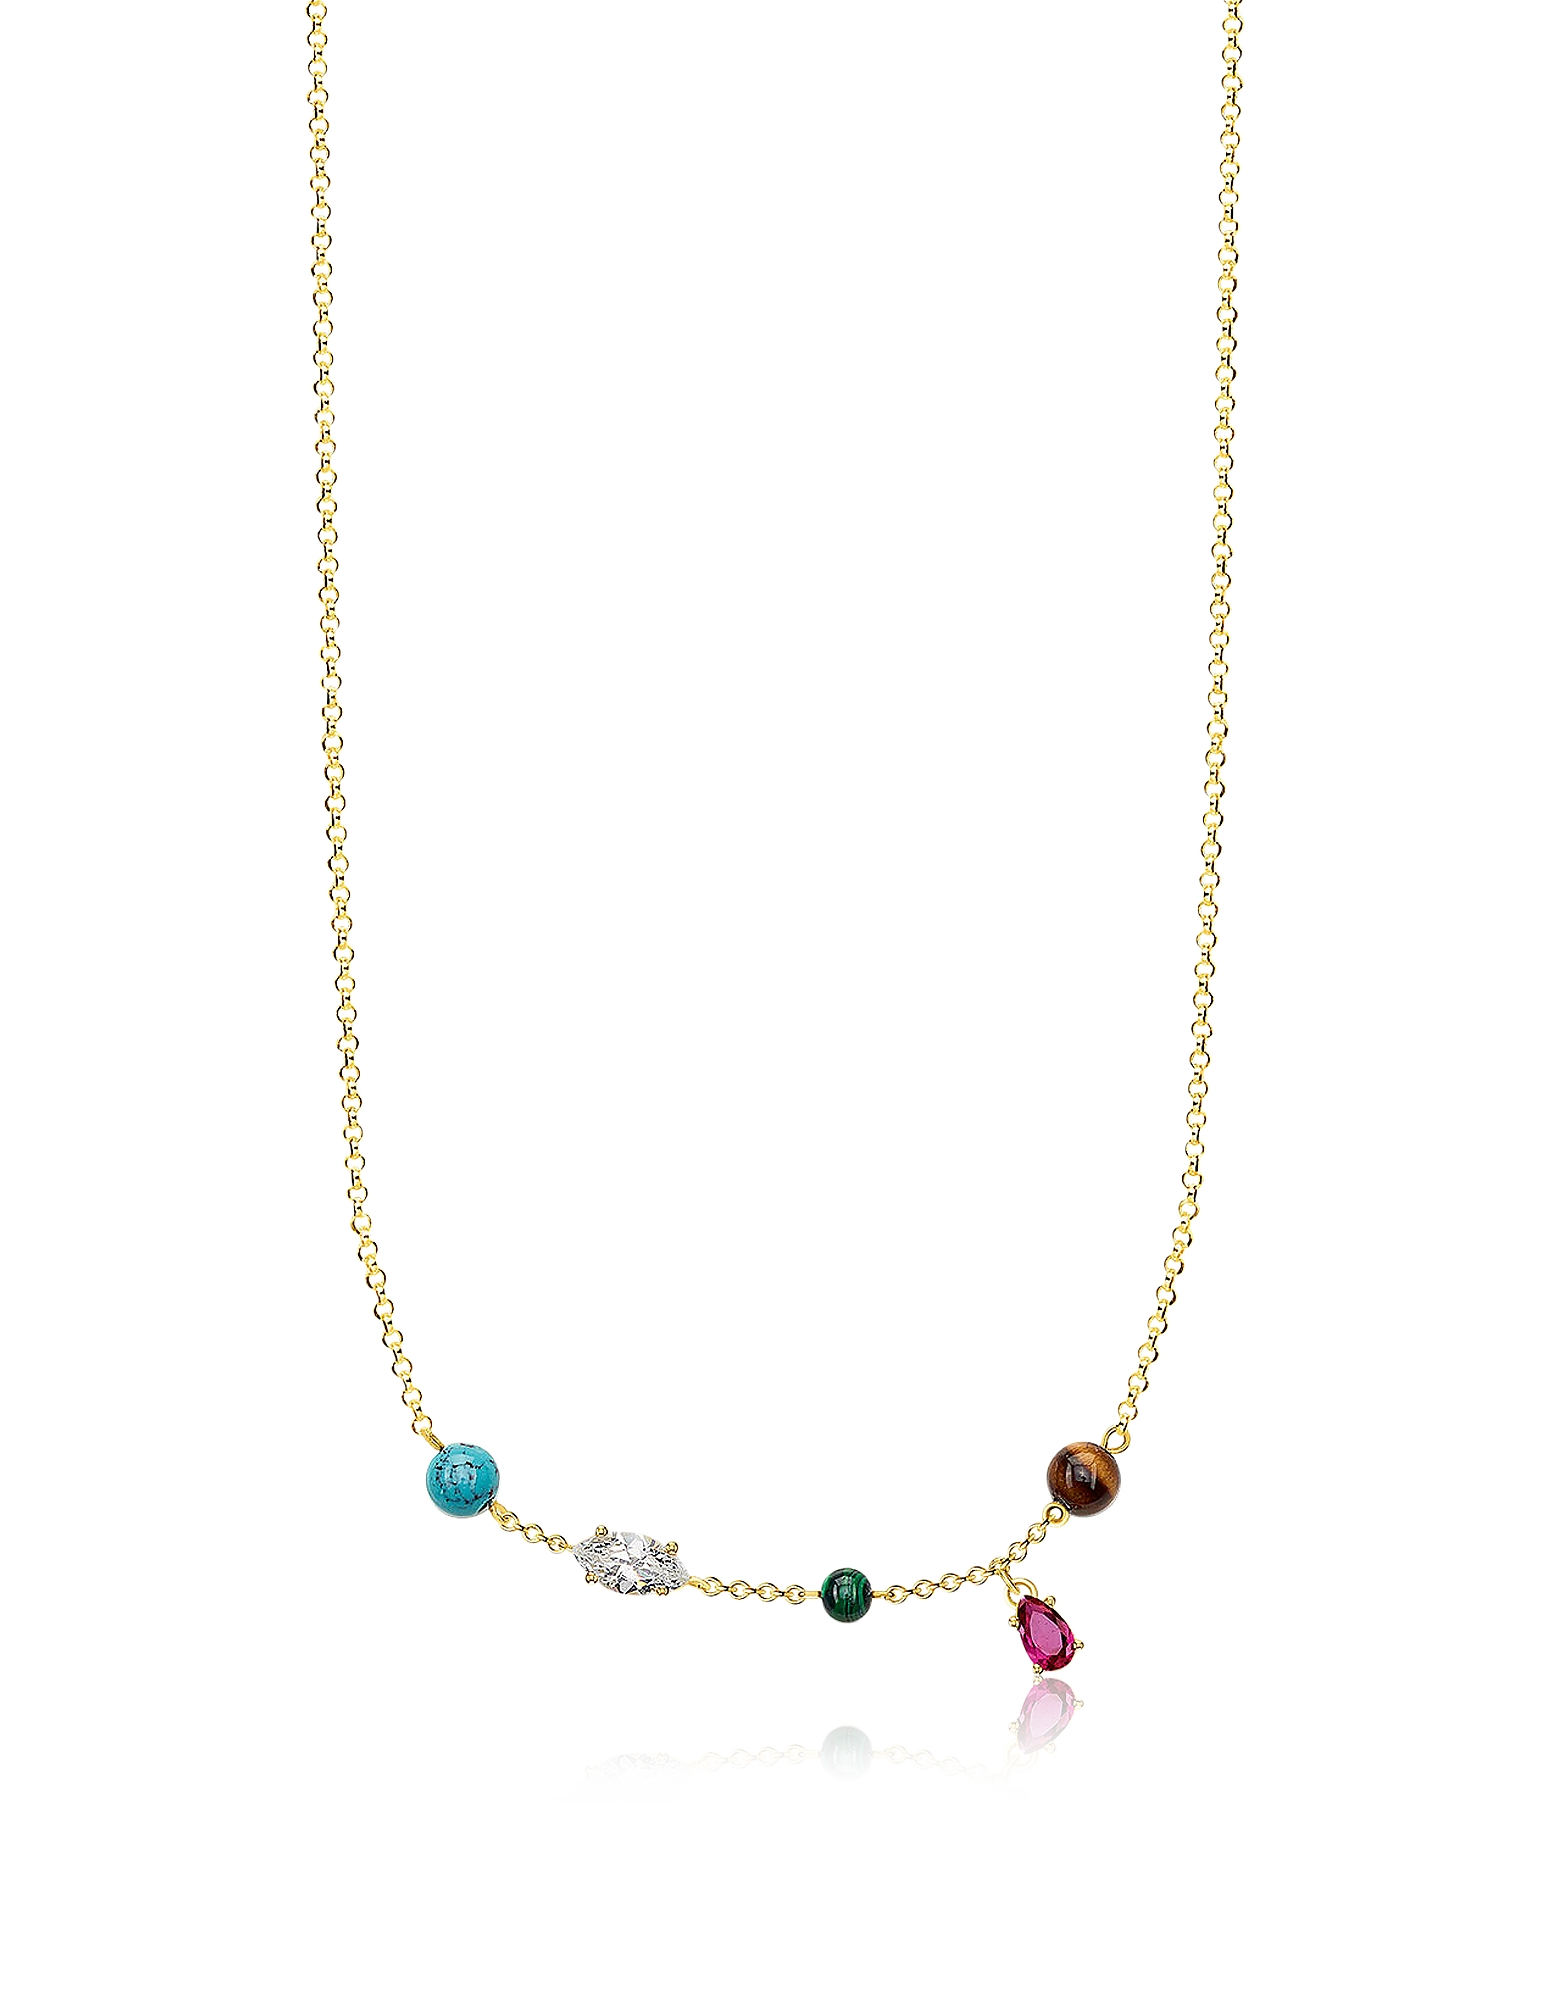 Thomas Sabo Necklaces, Gold Plated Sterling Silver Riviera Colours Necklace w/Ceramic Stones